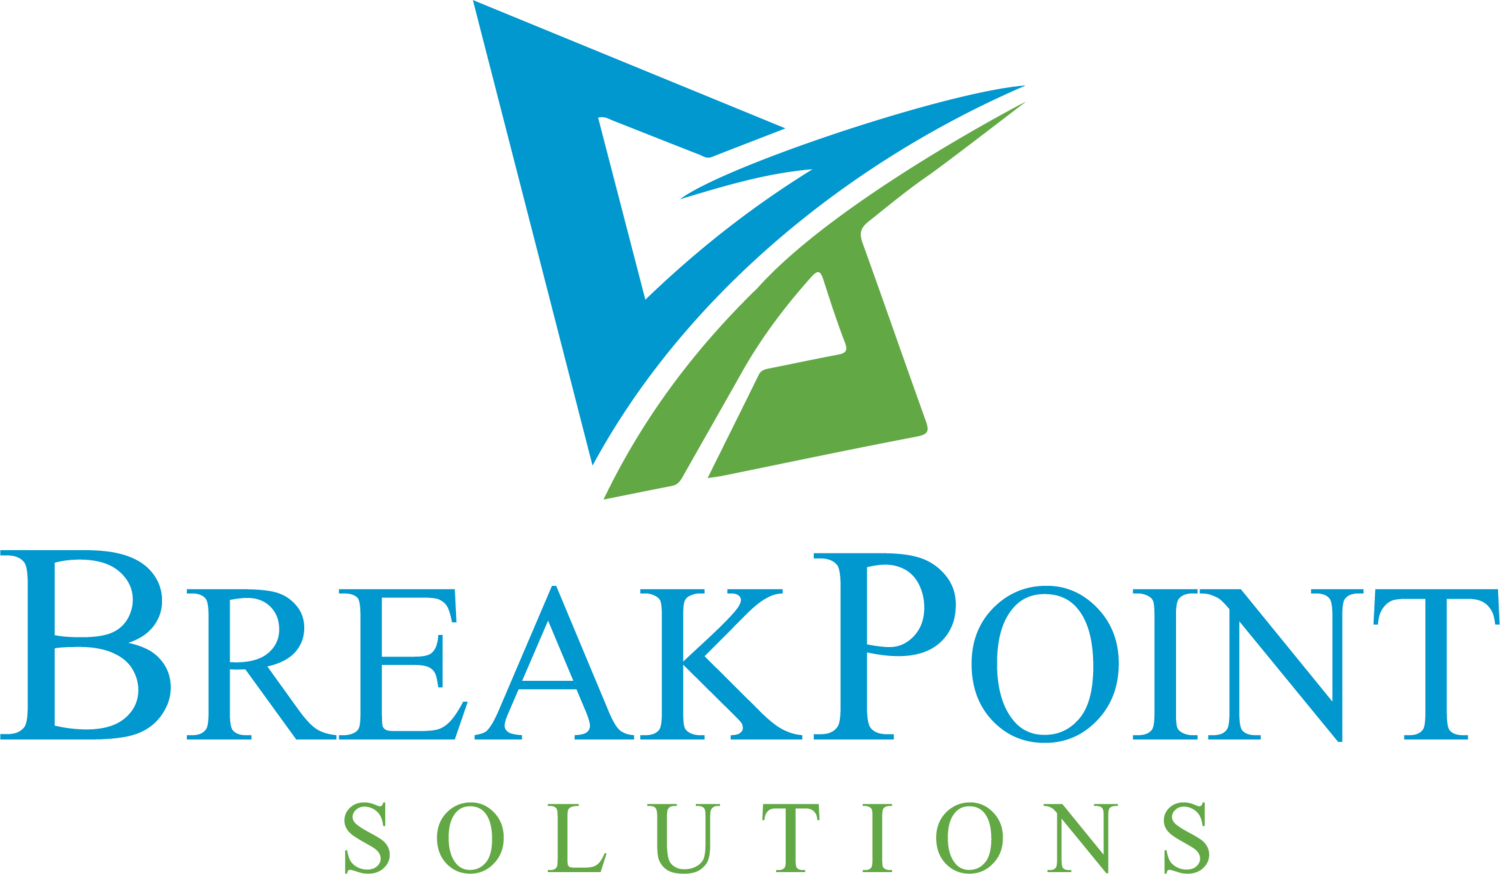 Breakpoint Solutions